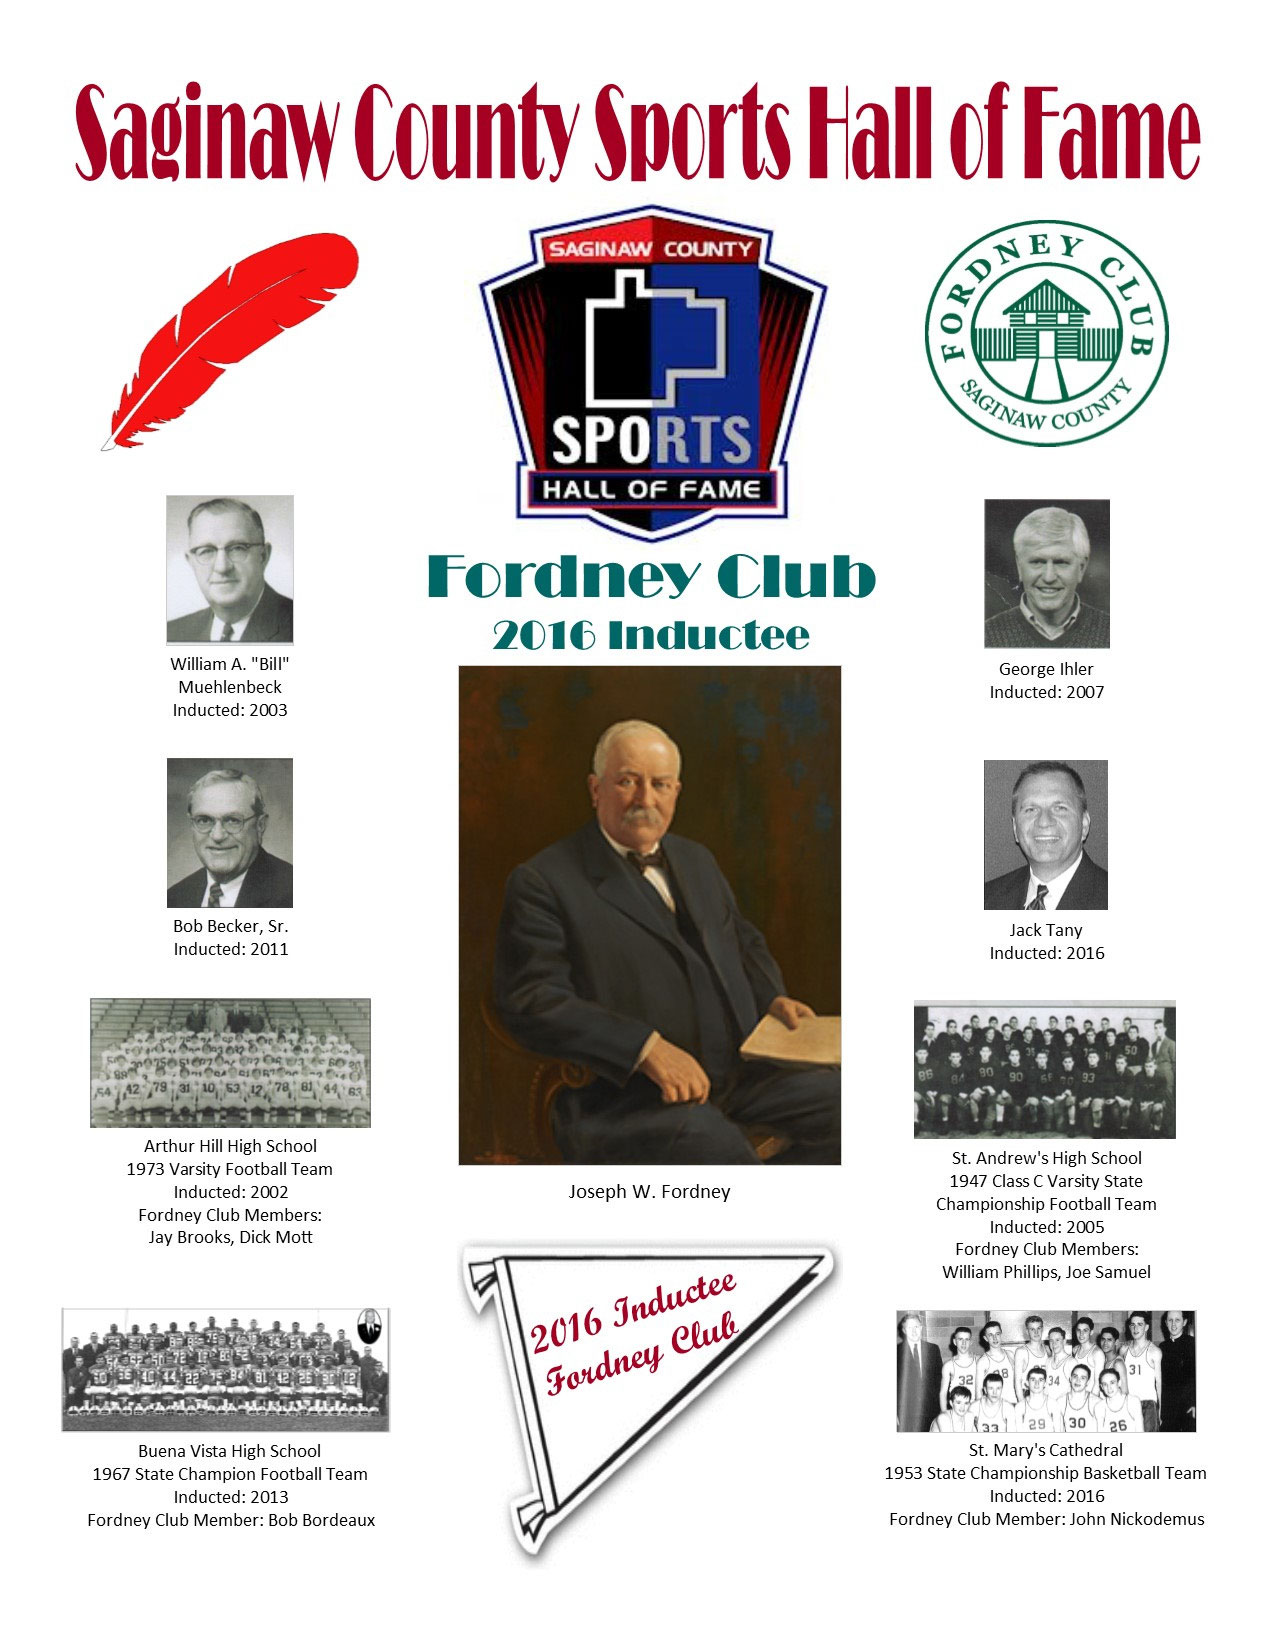 Saginaw County Sports Hall of Fame